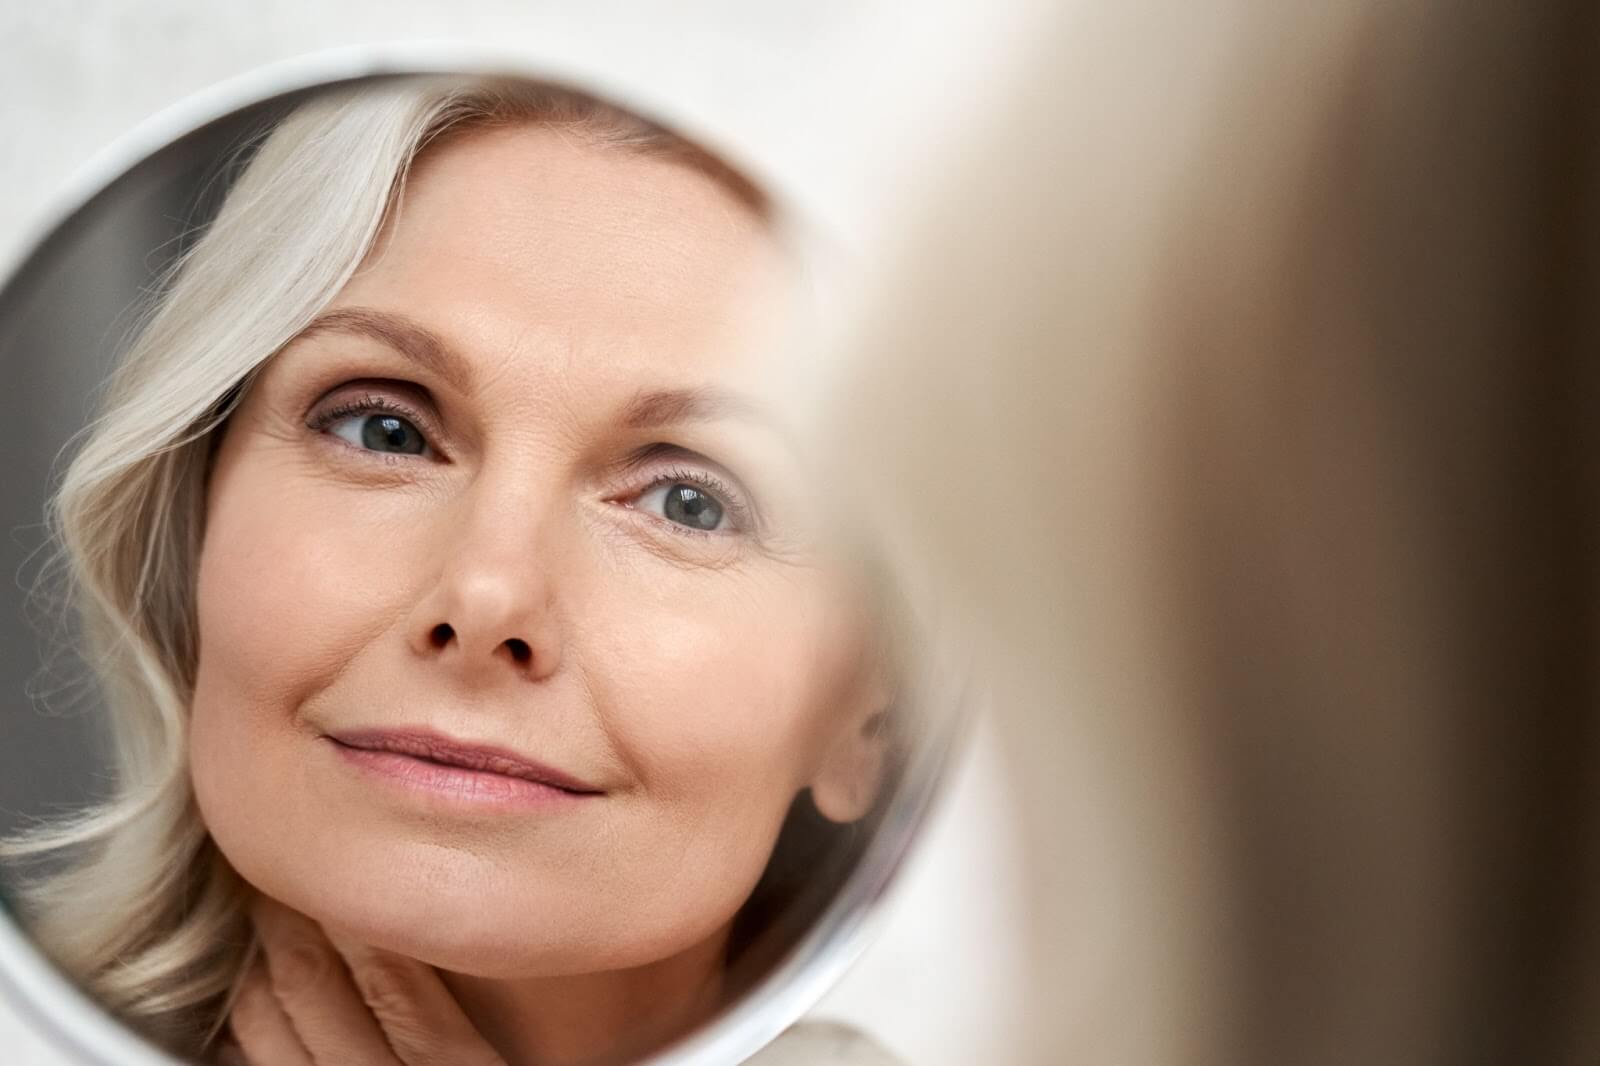 Older woman with a great anti-aging regimen